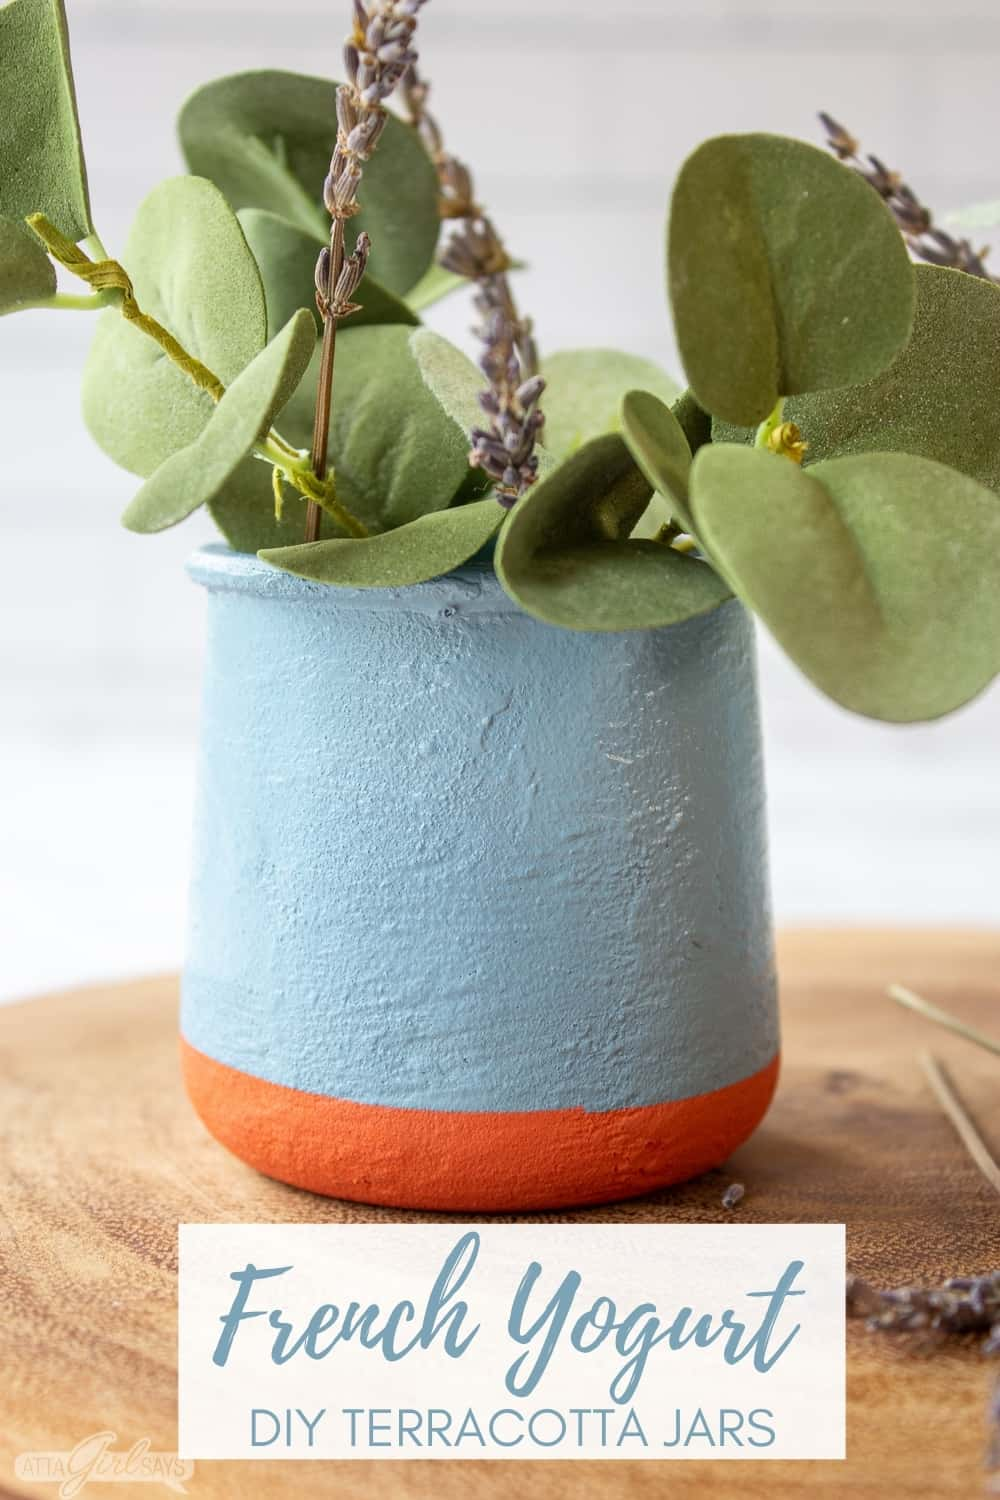 DIY La Fermiere French yogurt jar filled with eucalpytus and lavender on a wooden charger